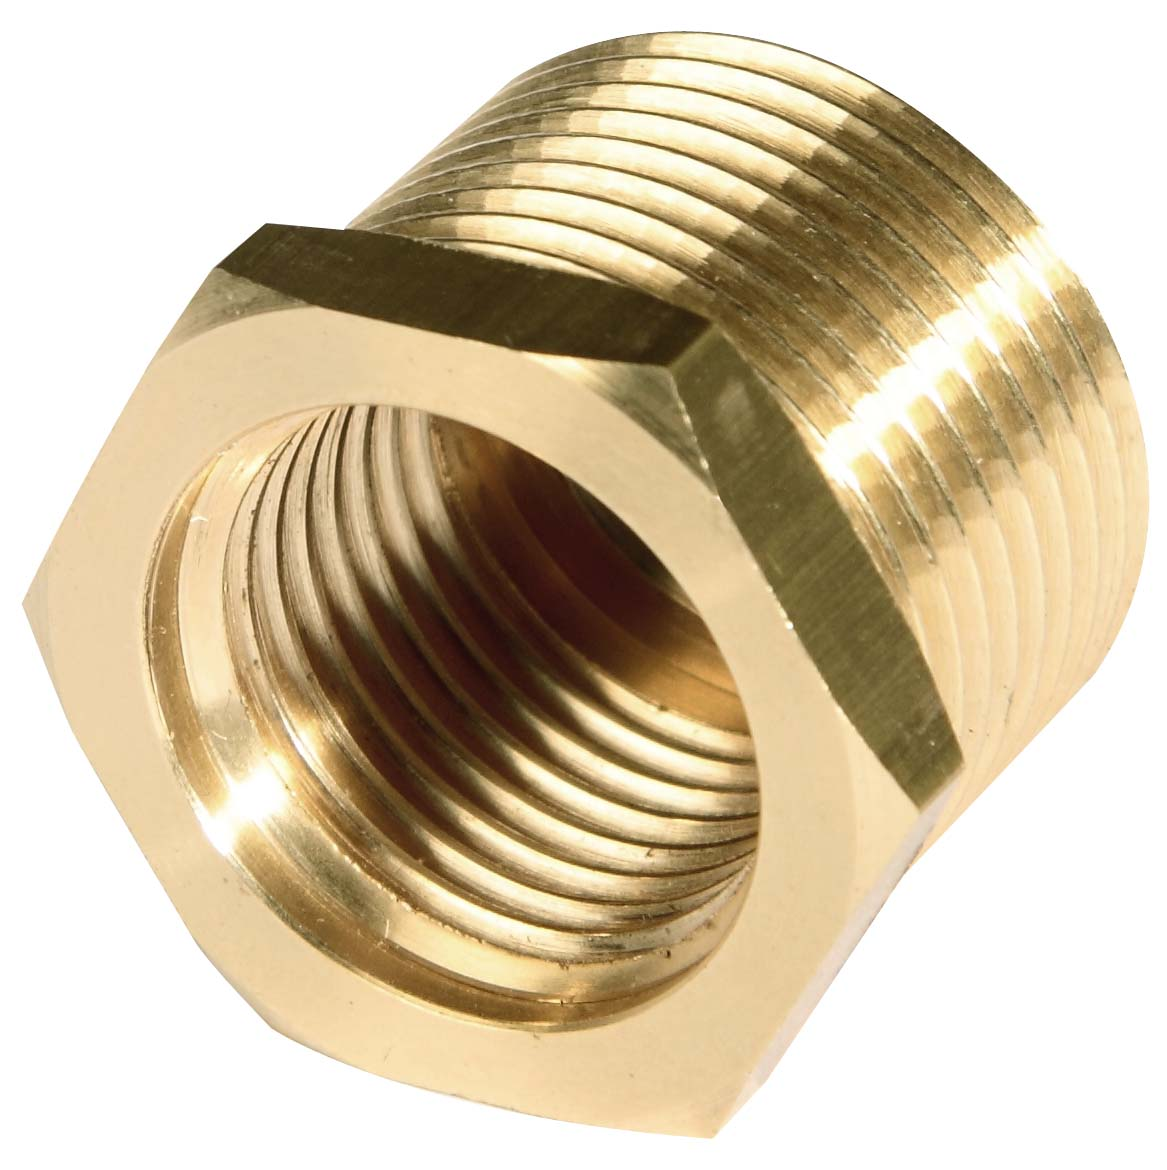 Brass nipple fittings with thread